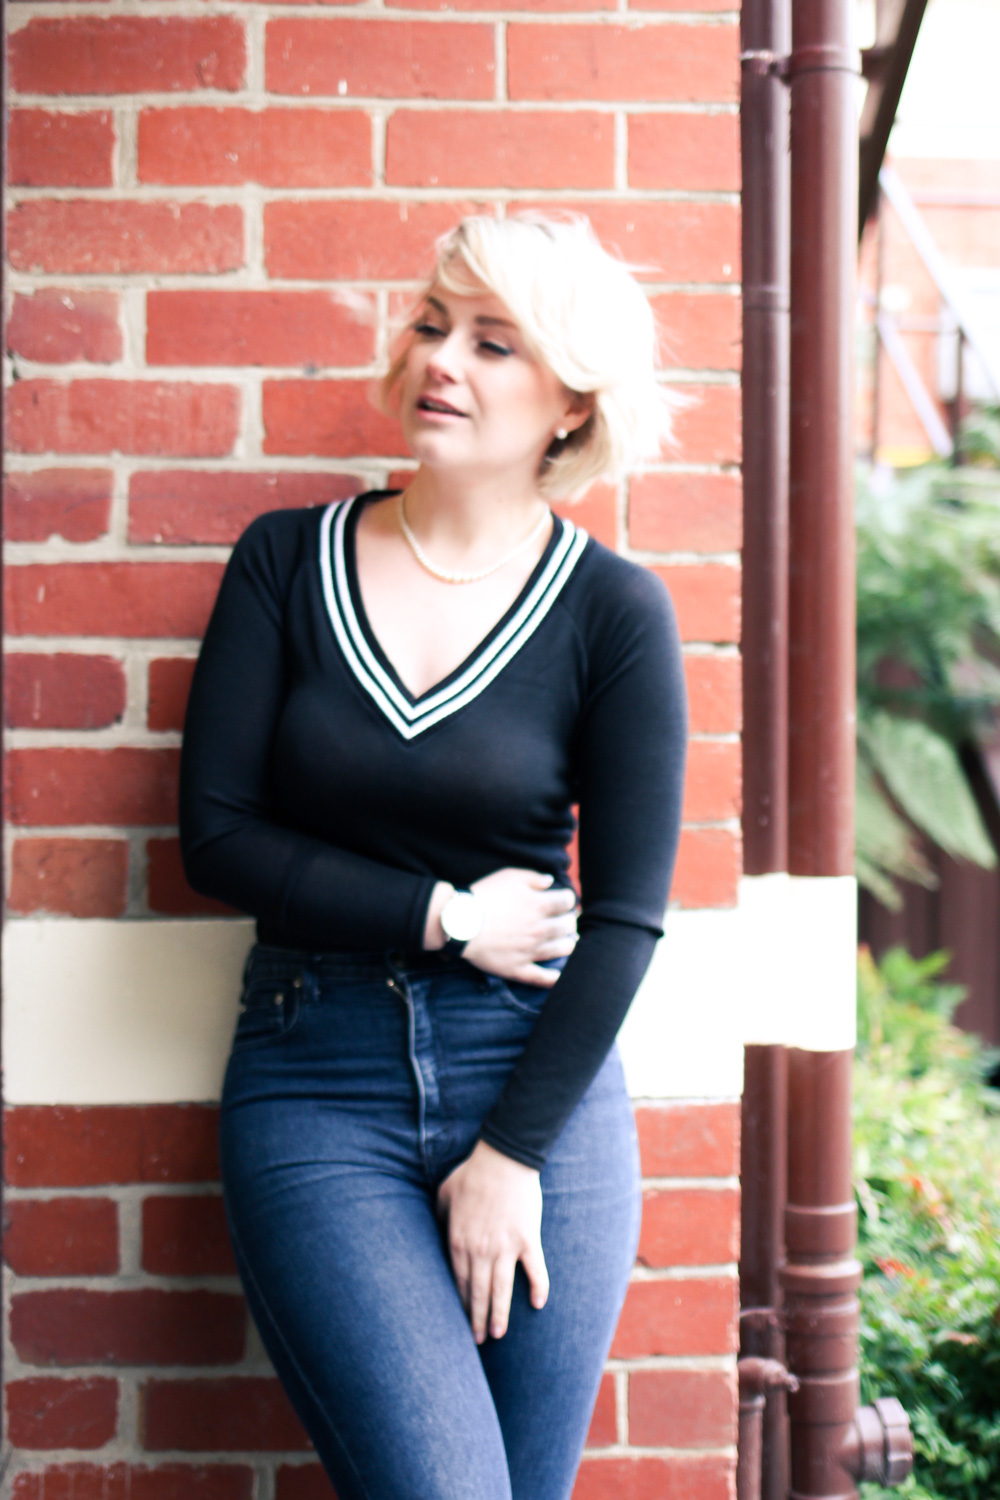 @findingfemme for the BooHoo.com #WeAreUs campaign wearing v-neck sweater and high waisted jeans.